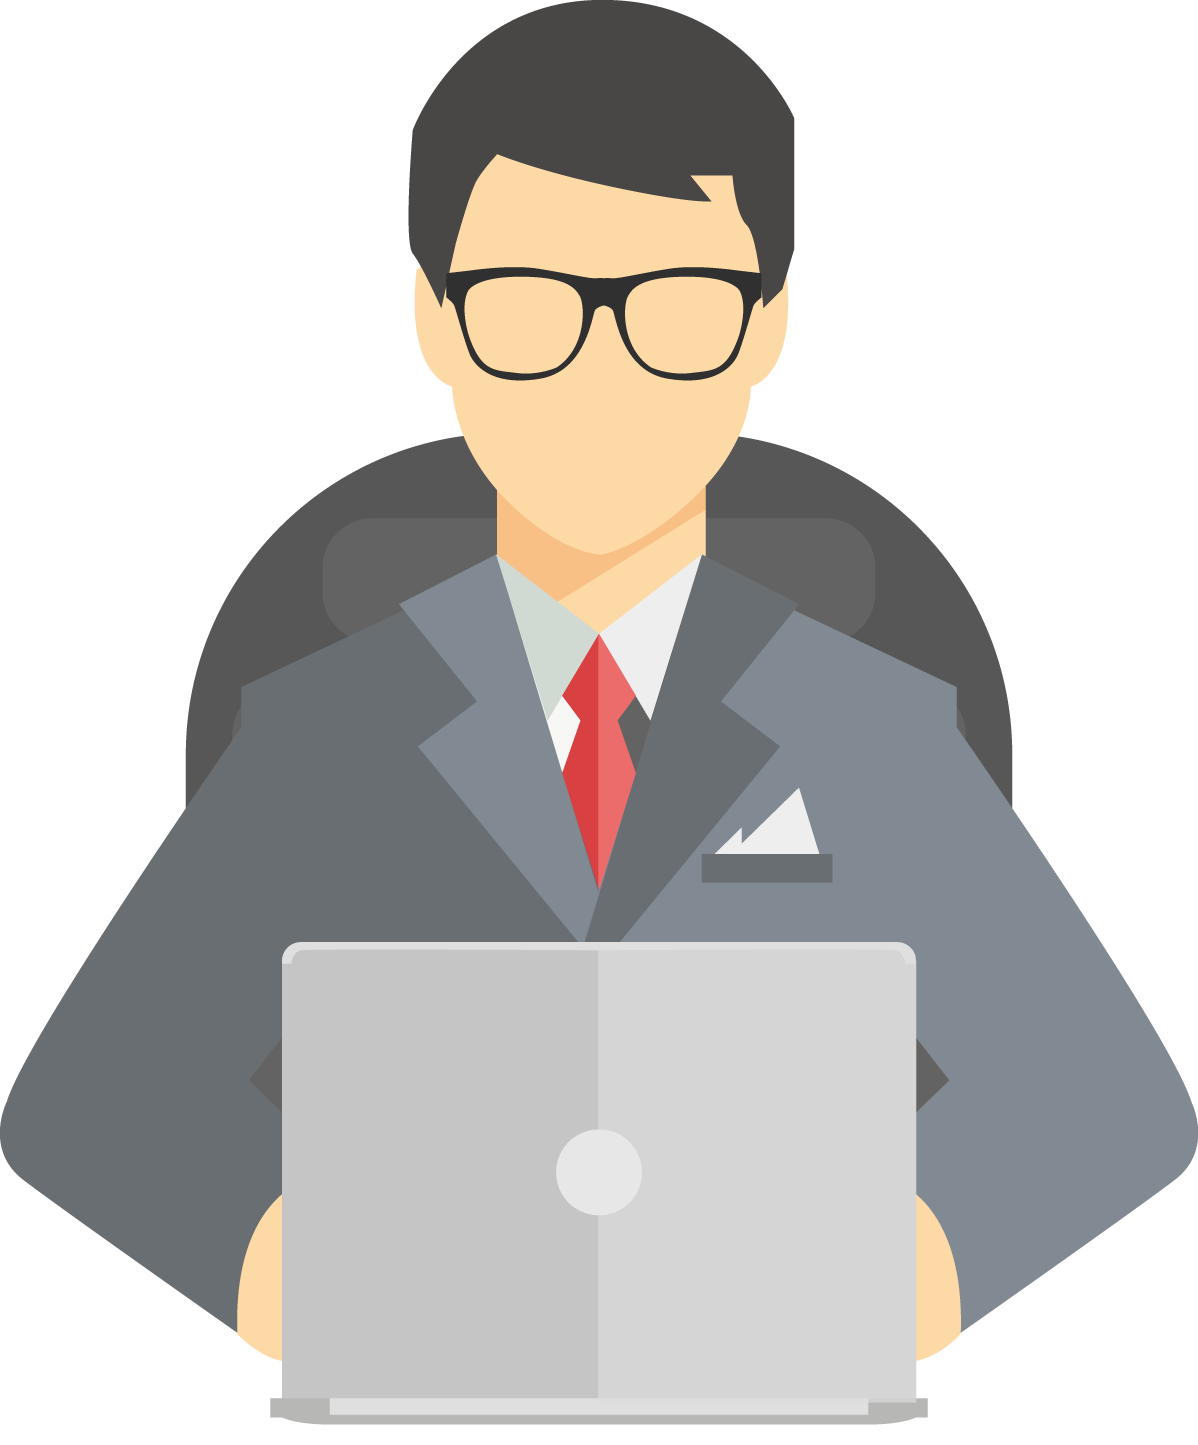 Businessman clipart png. At desk transparent images